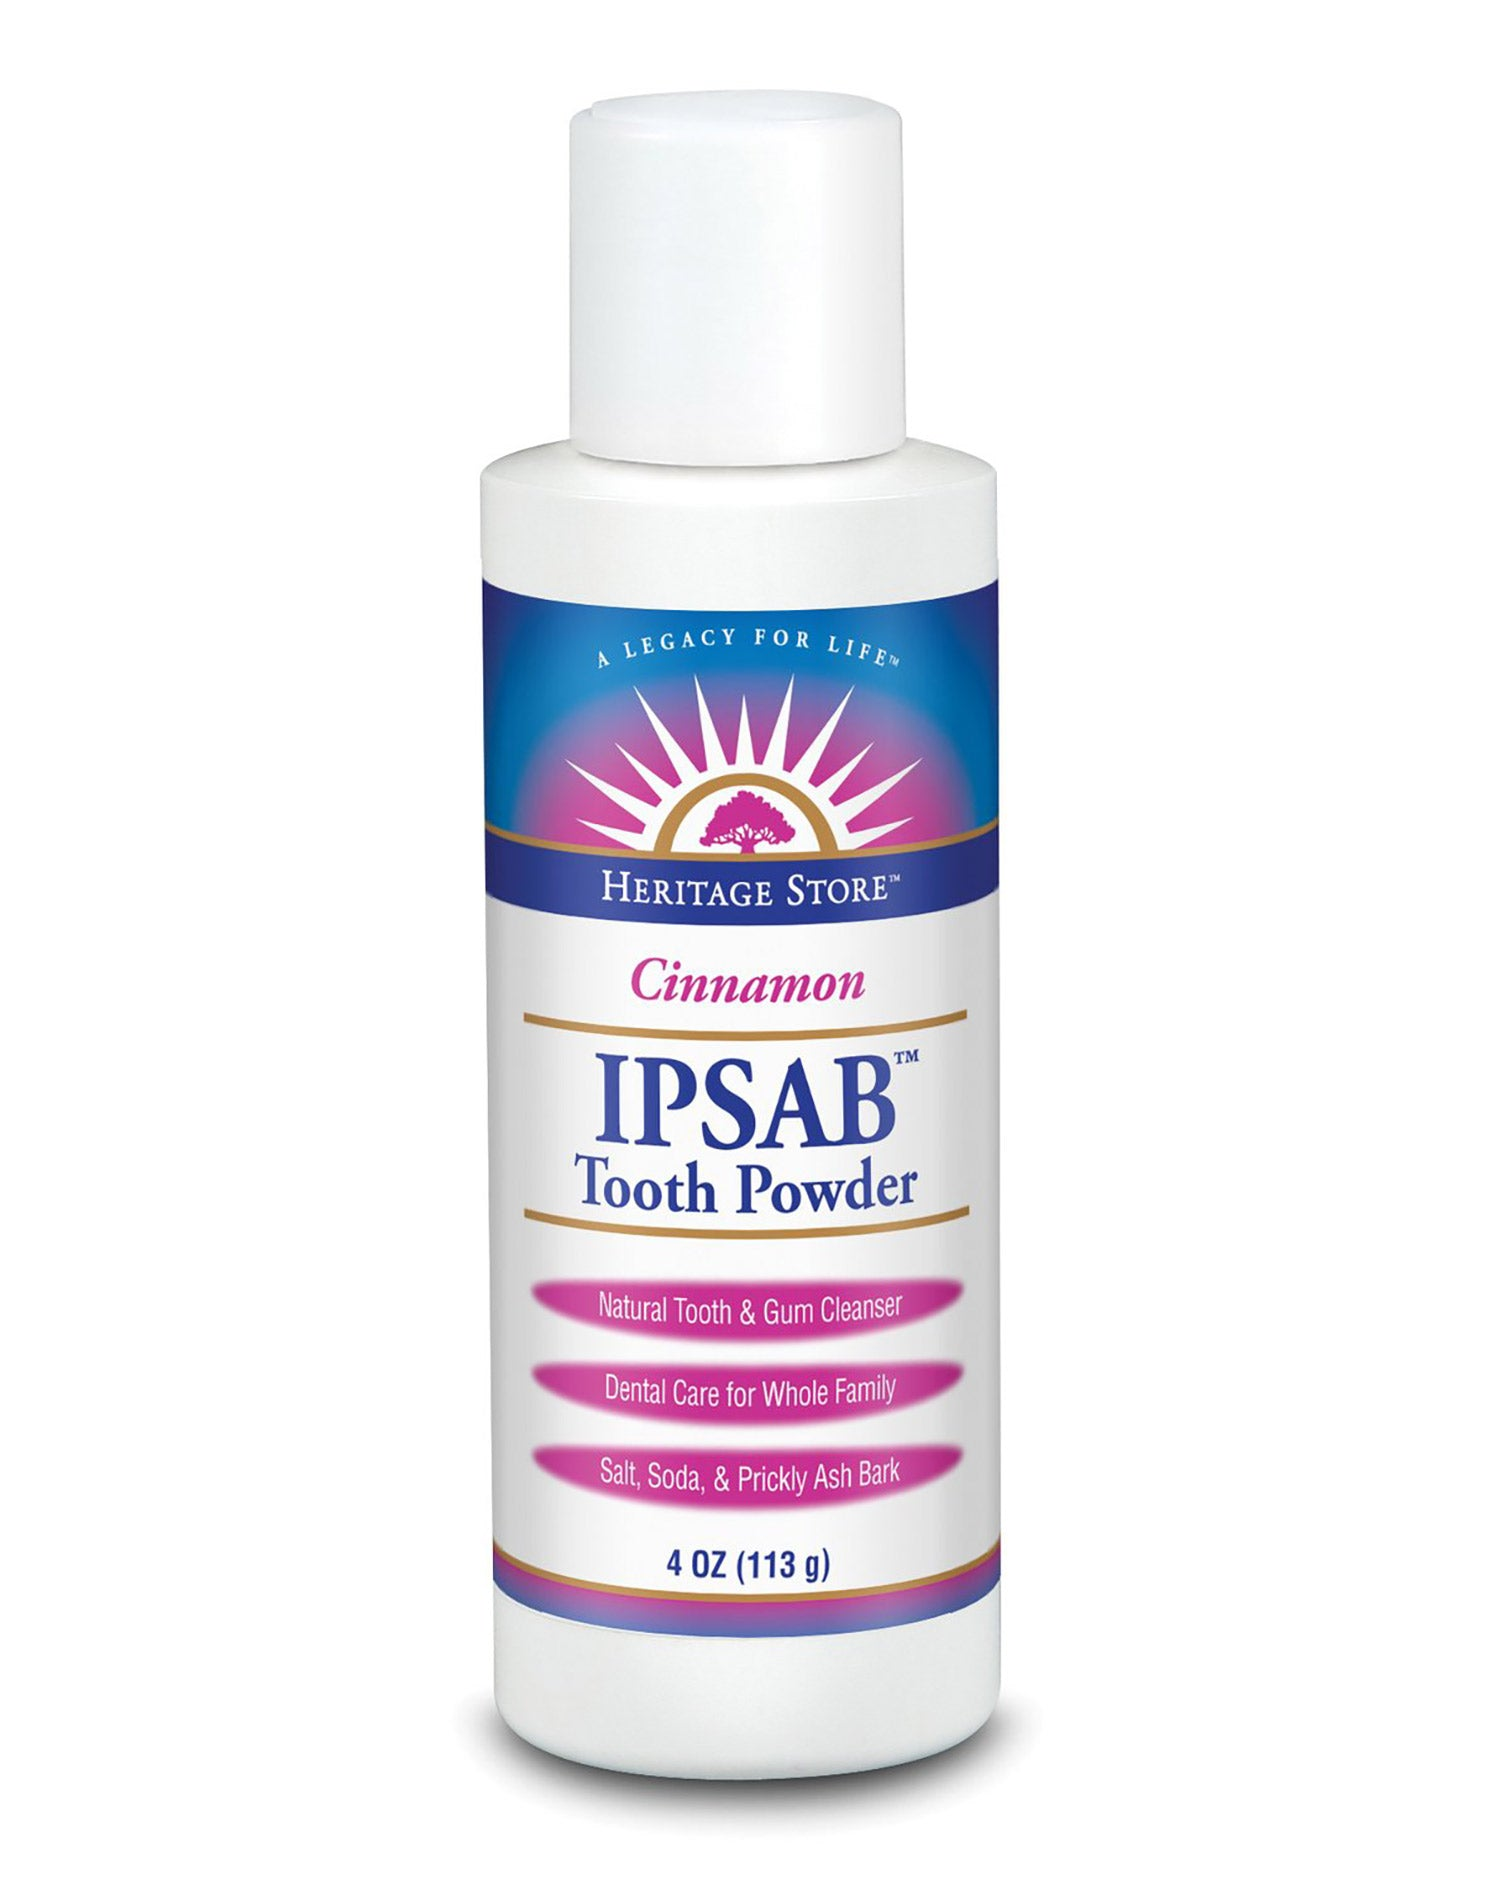 IPSAB Tooth Powder - Cinnamon